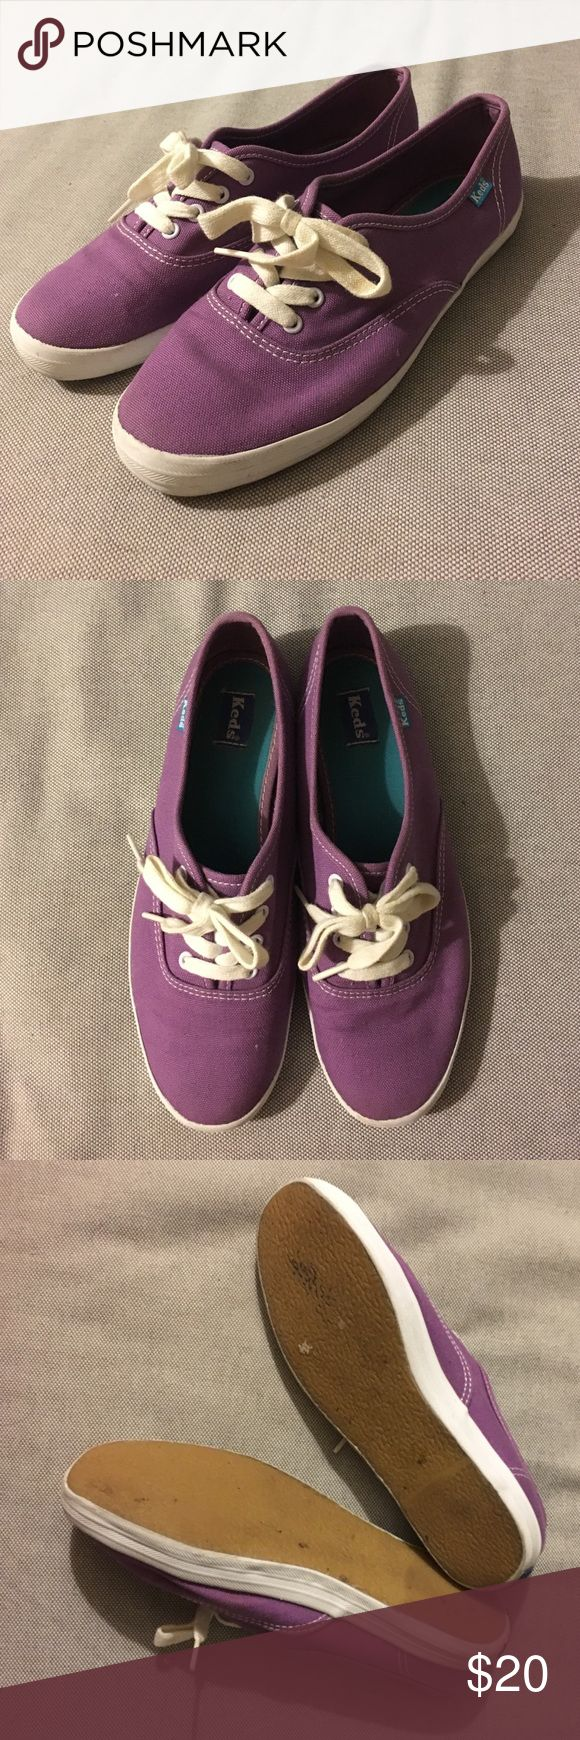 Keds champion womens Excellent condition. Feels like brand new. US womens 6. Keds Shoes Sneakers